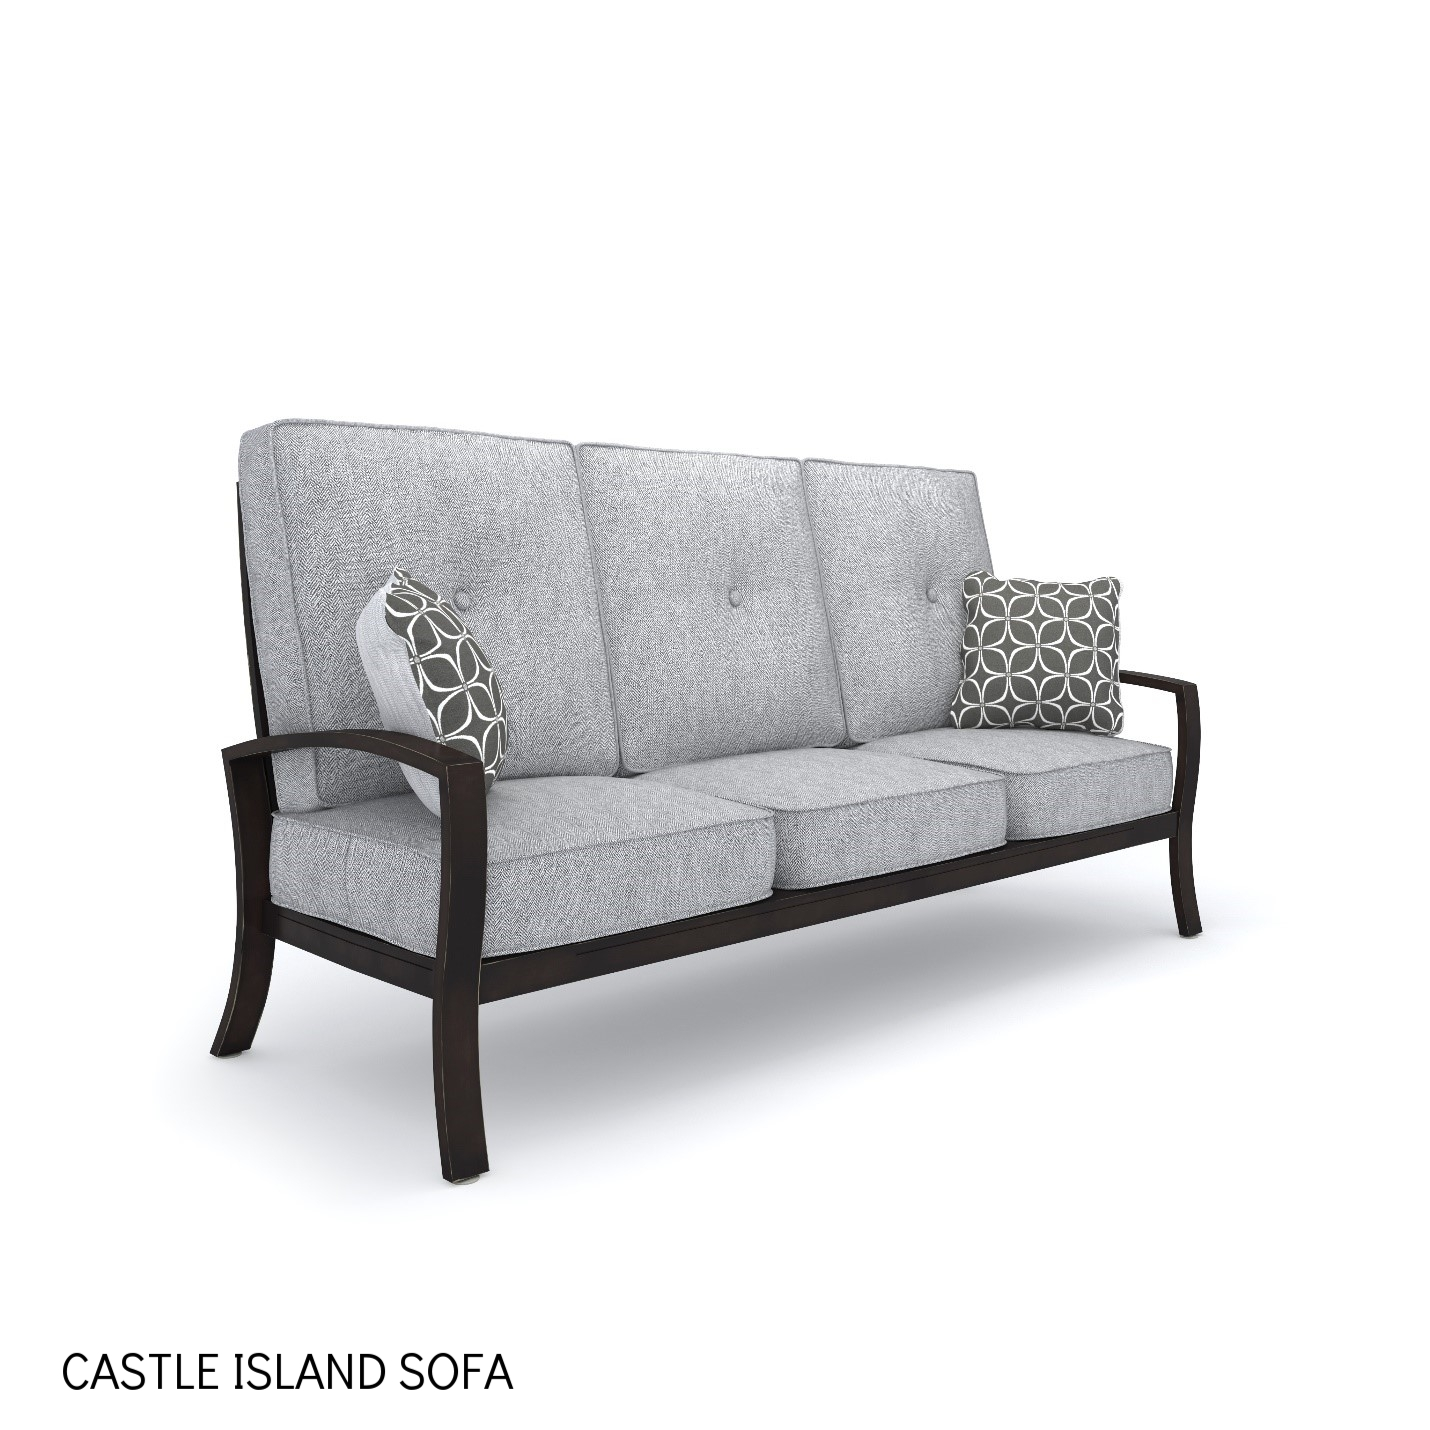 CASTLE ISLAND DEEP SEATING Couch.jpg